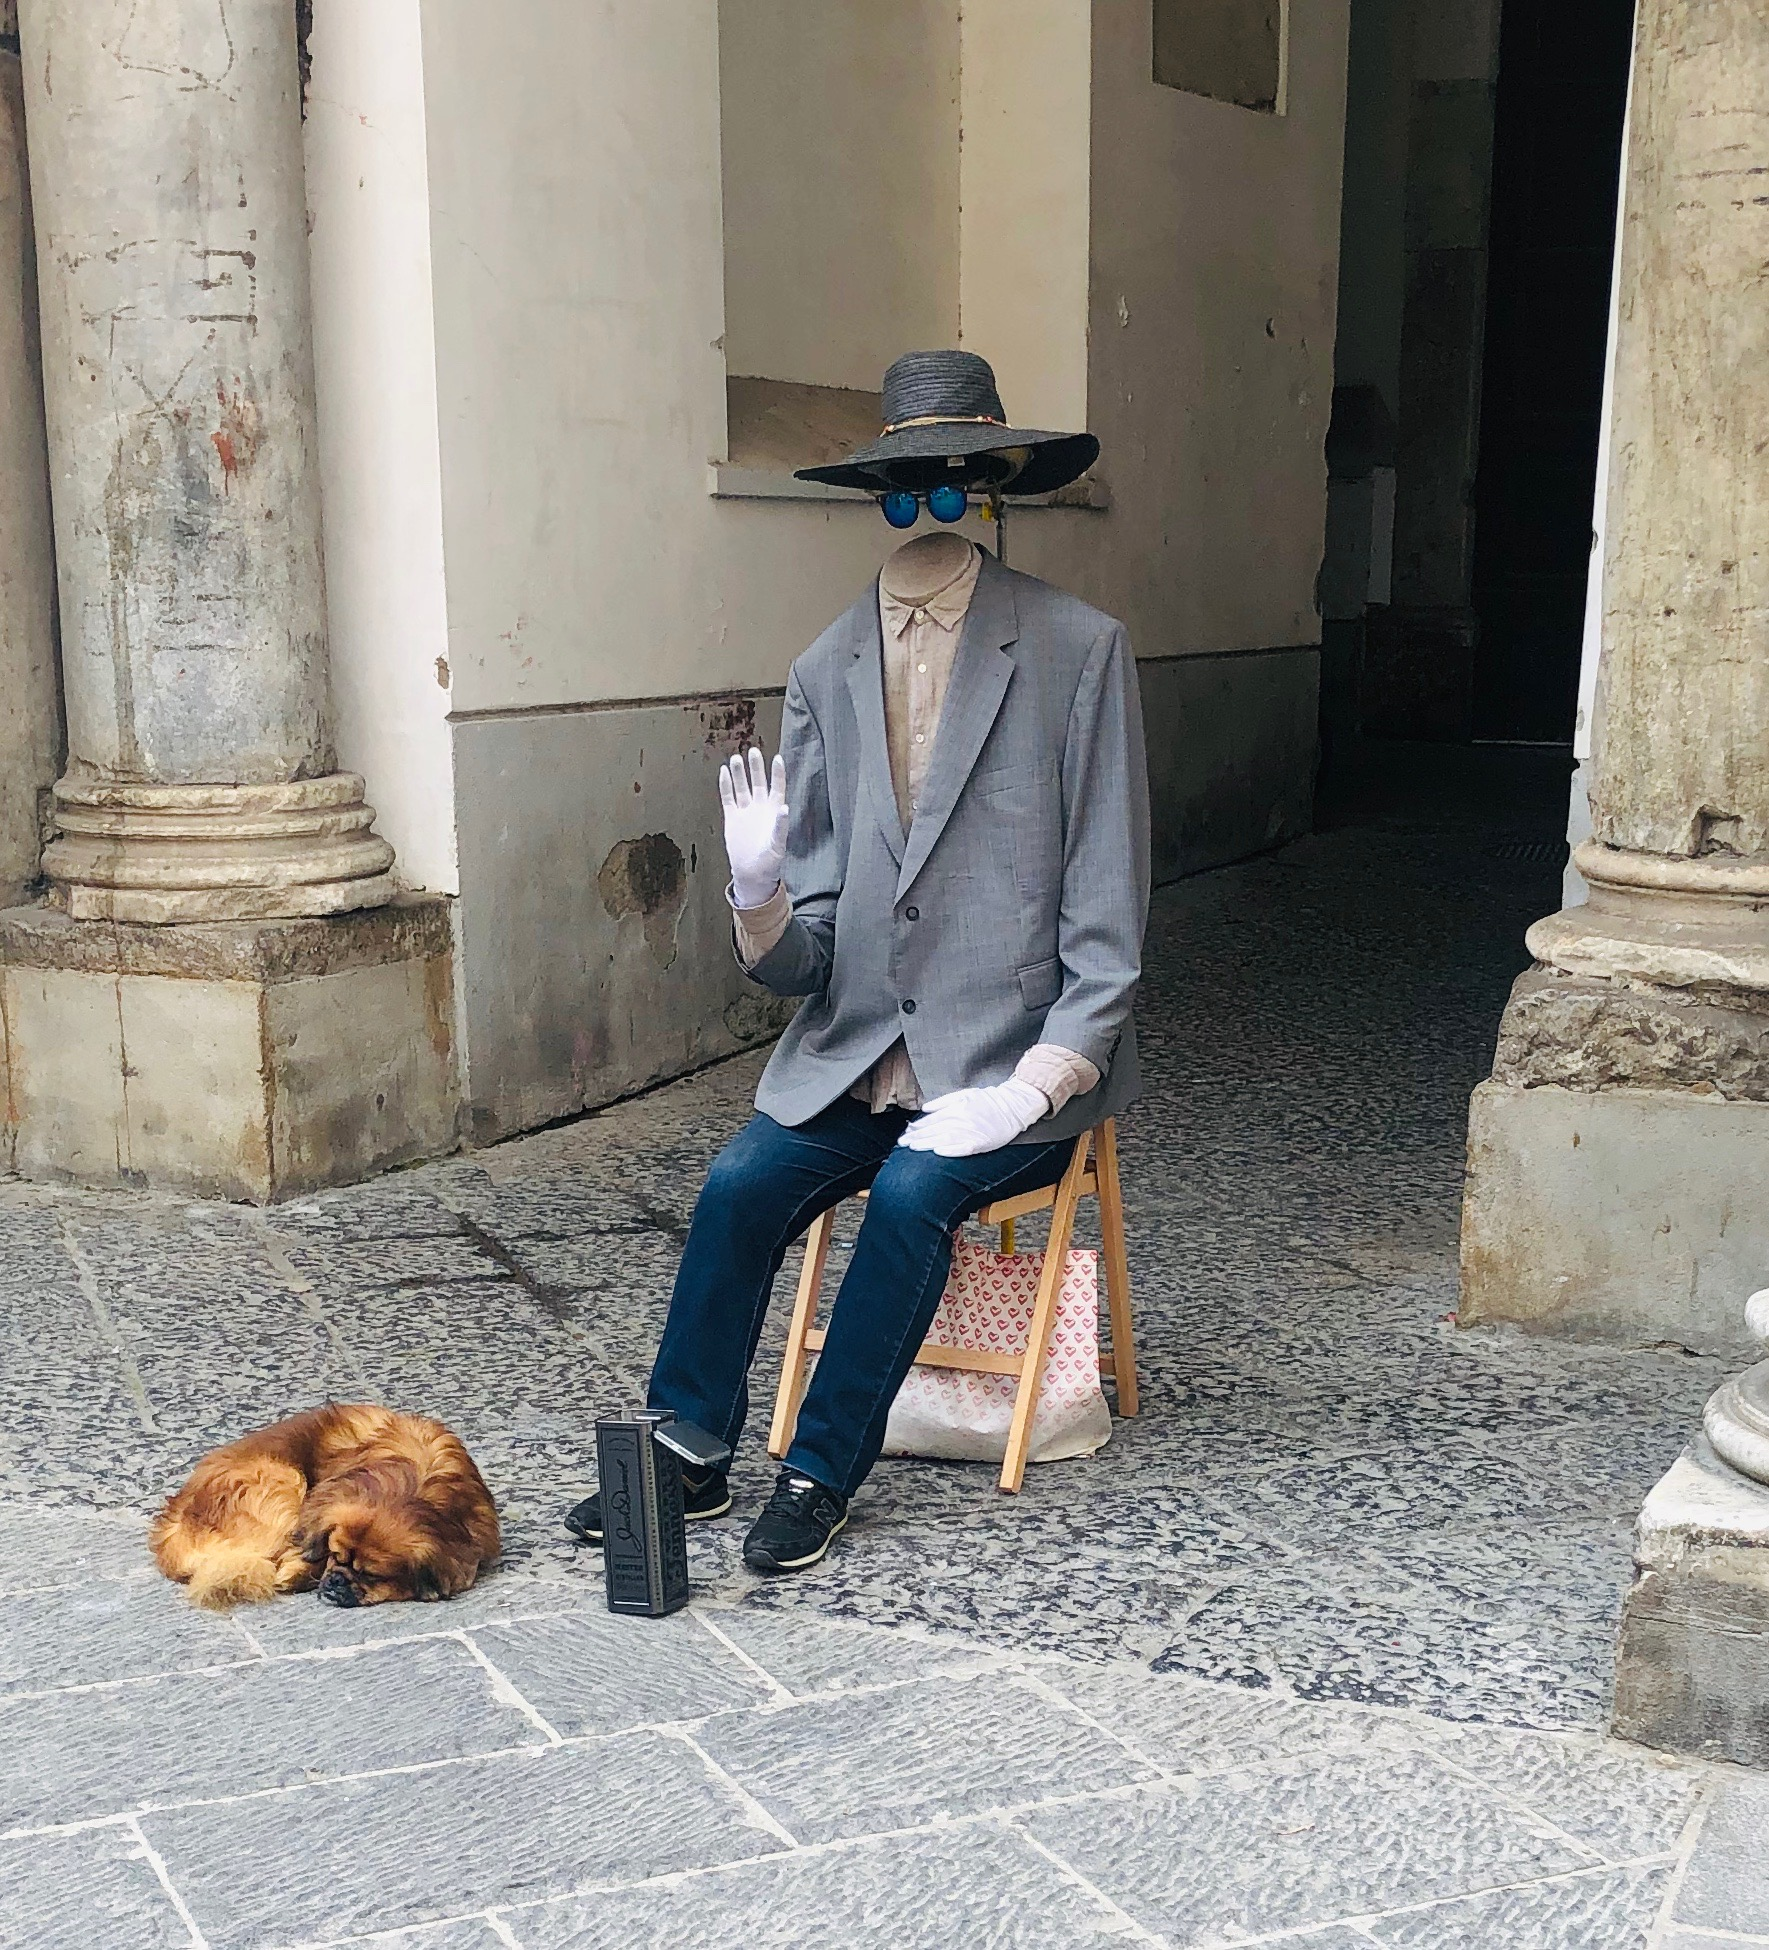 The invisible man, and his not so invisible dog.